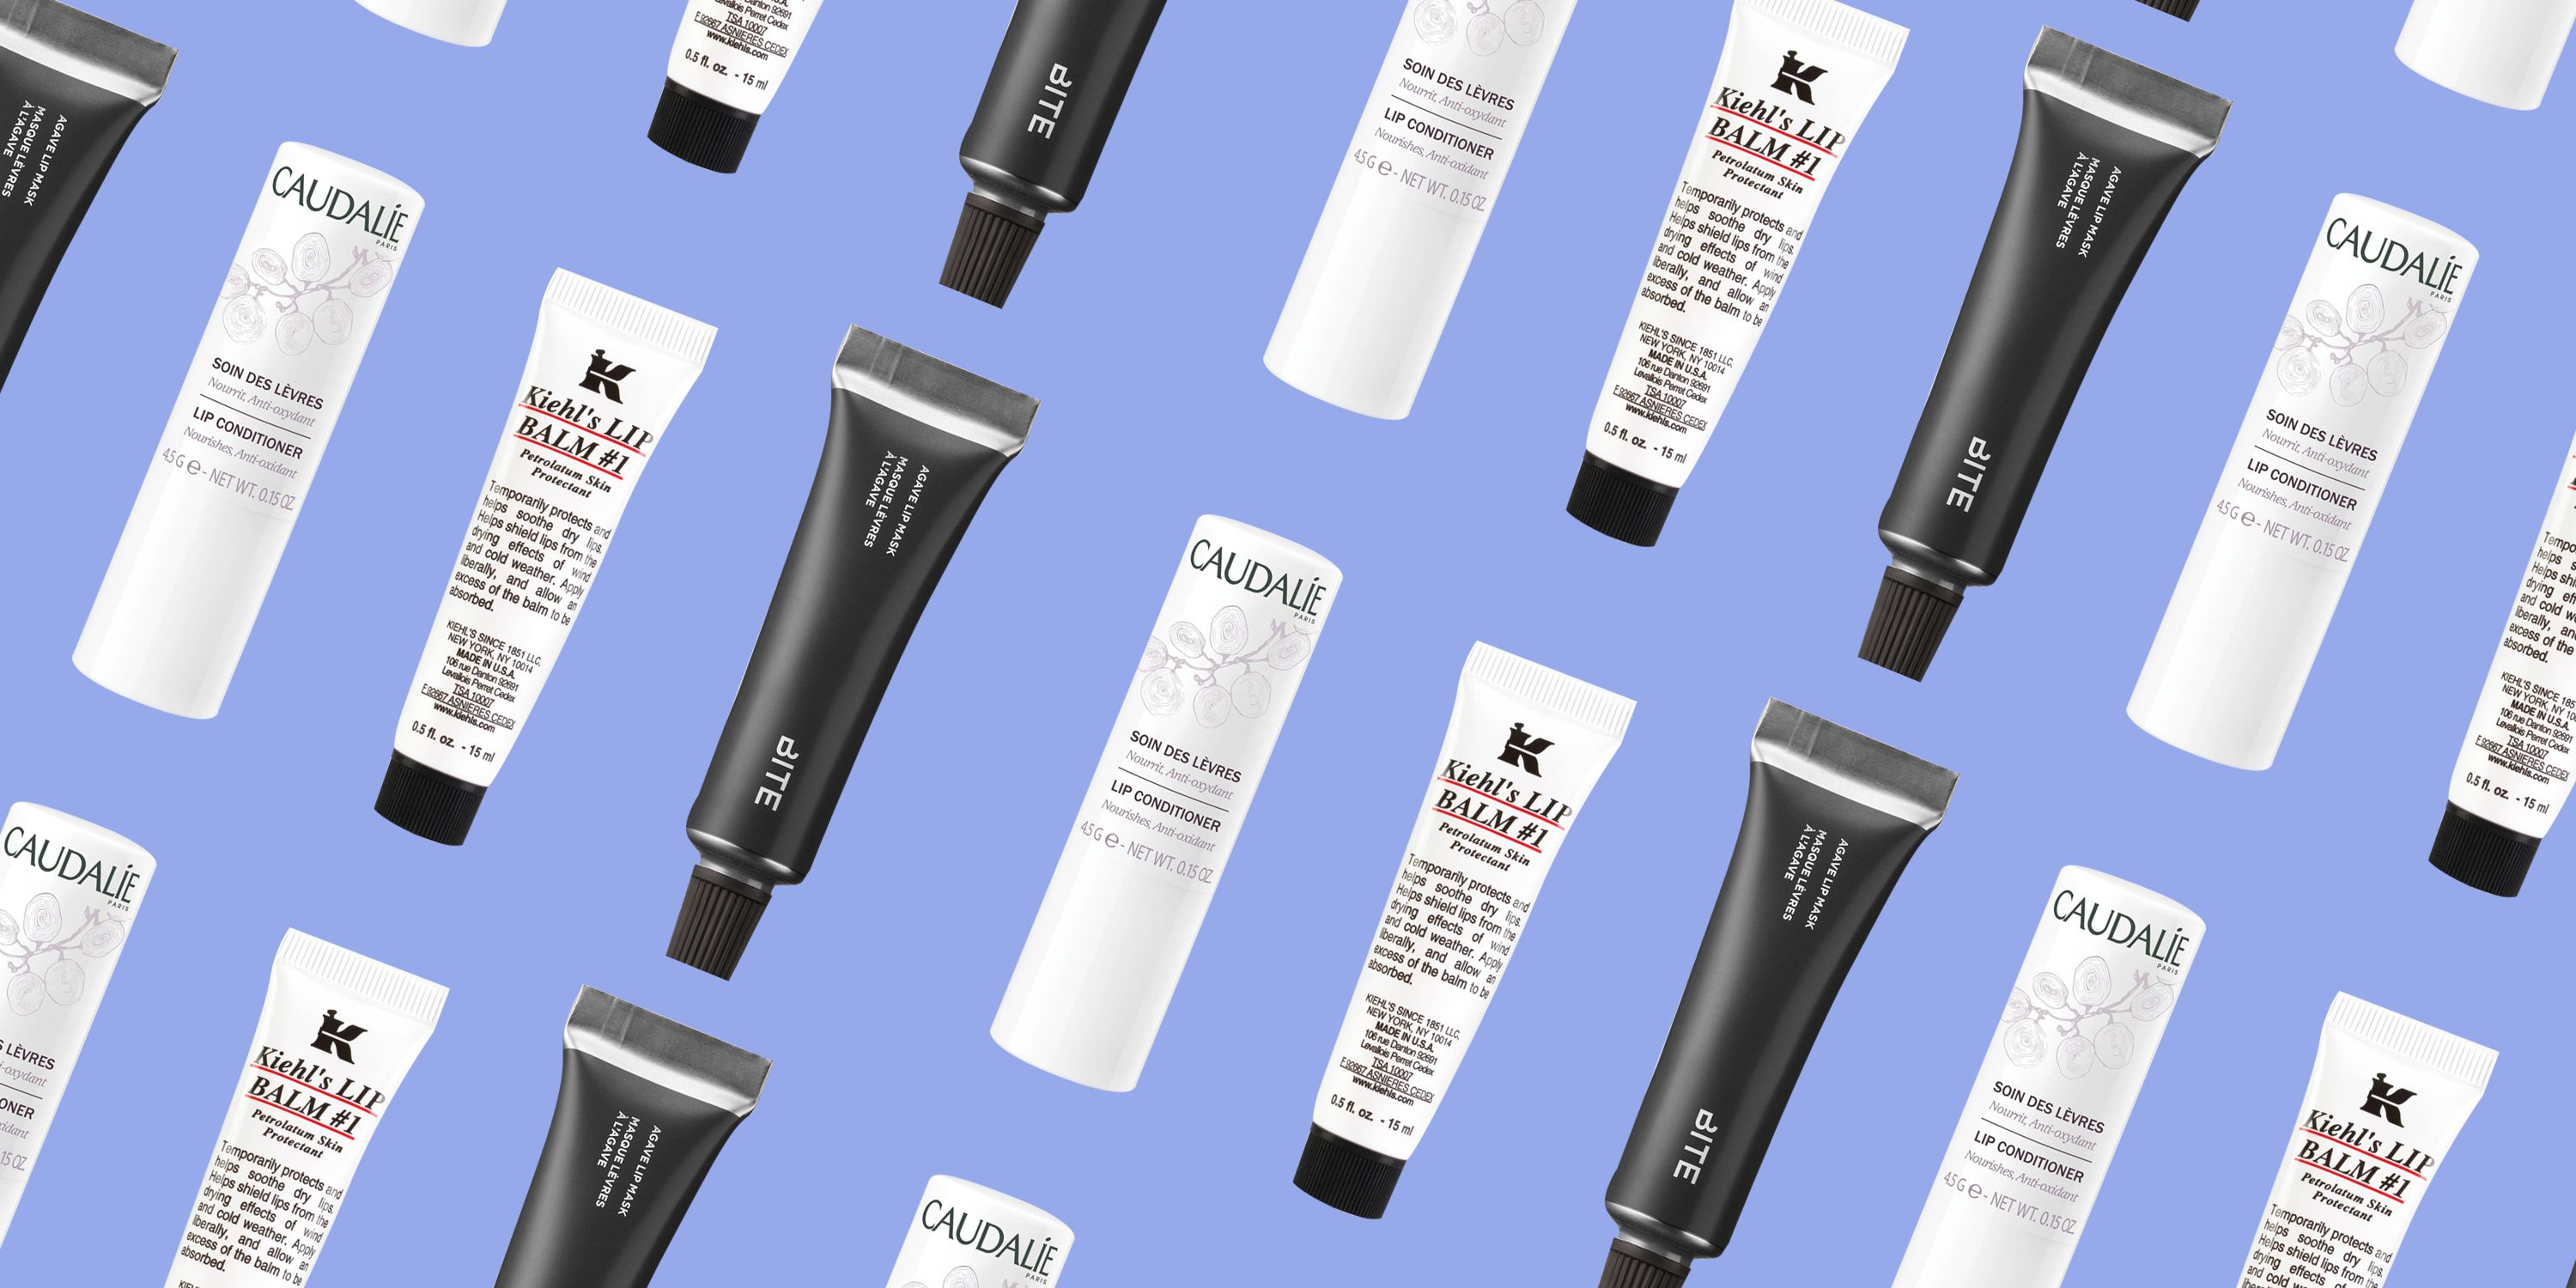 10 Best Lip Balms to Heal Your Dry, Chapped Lips, According to Dermatologists